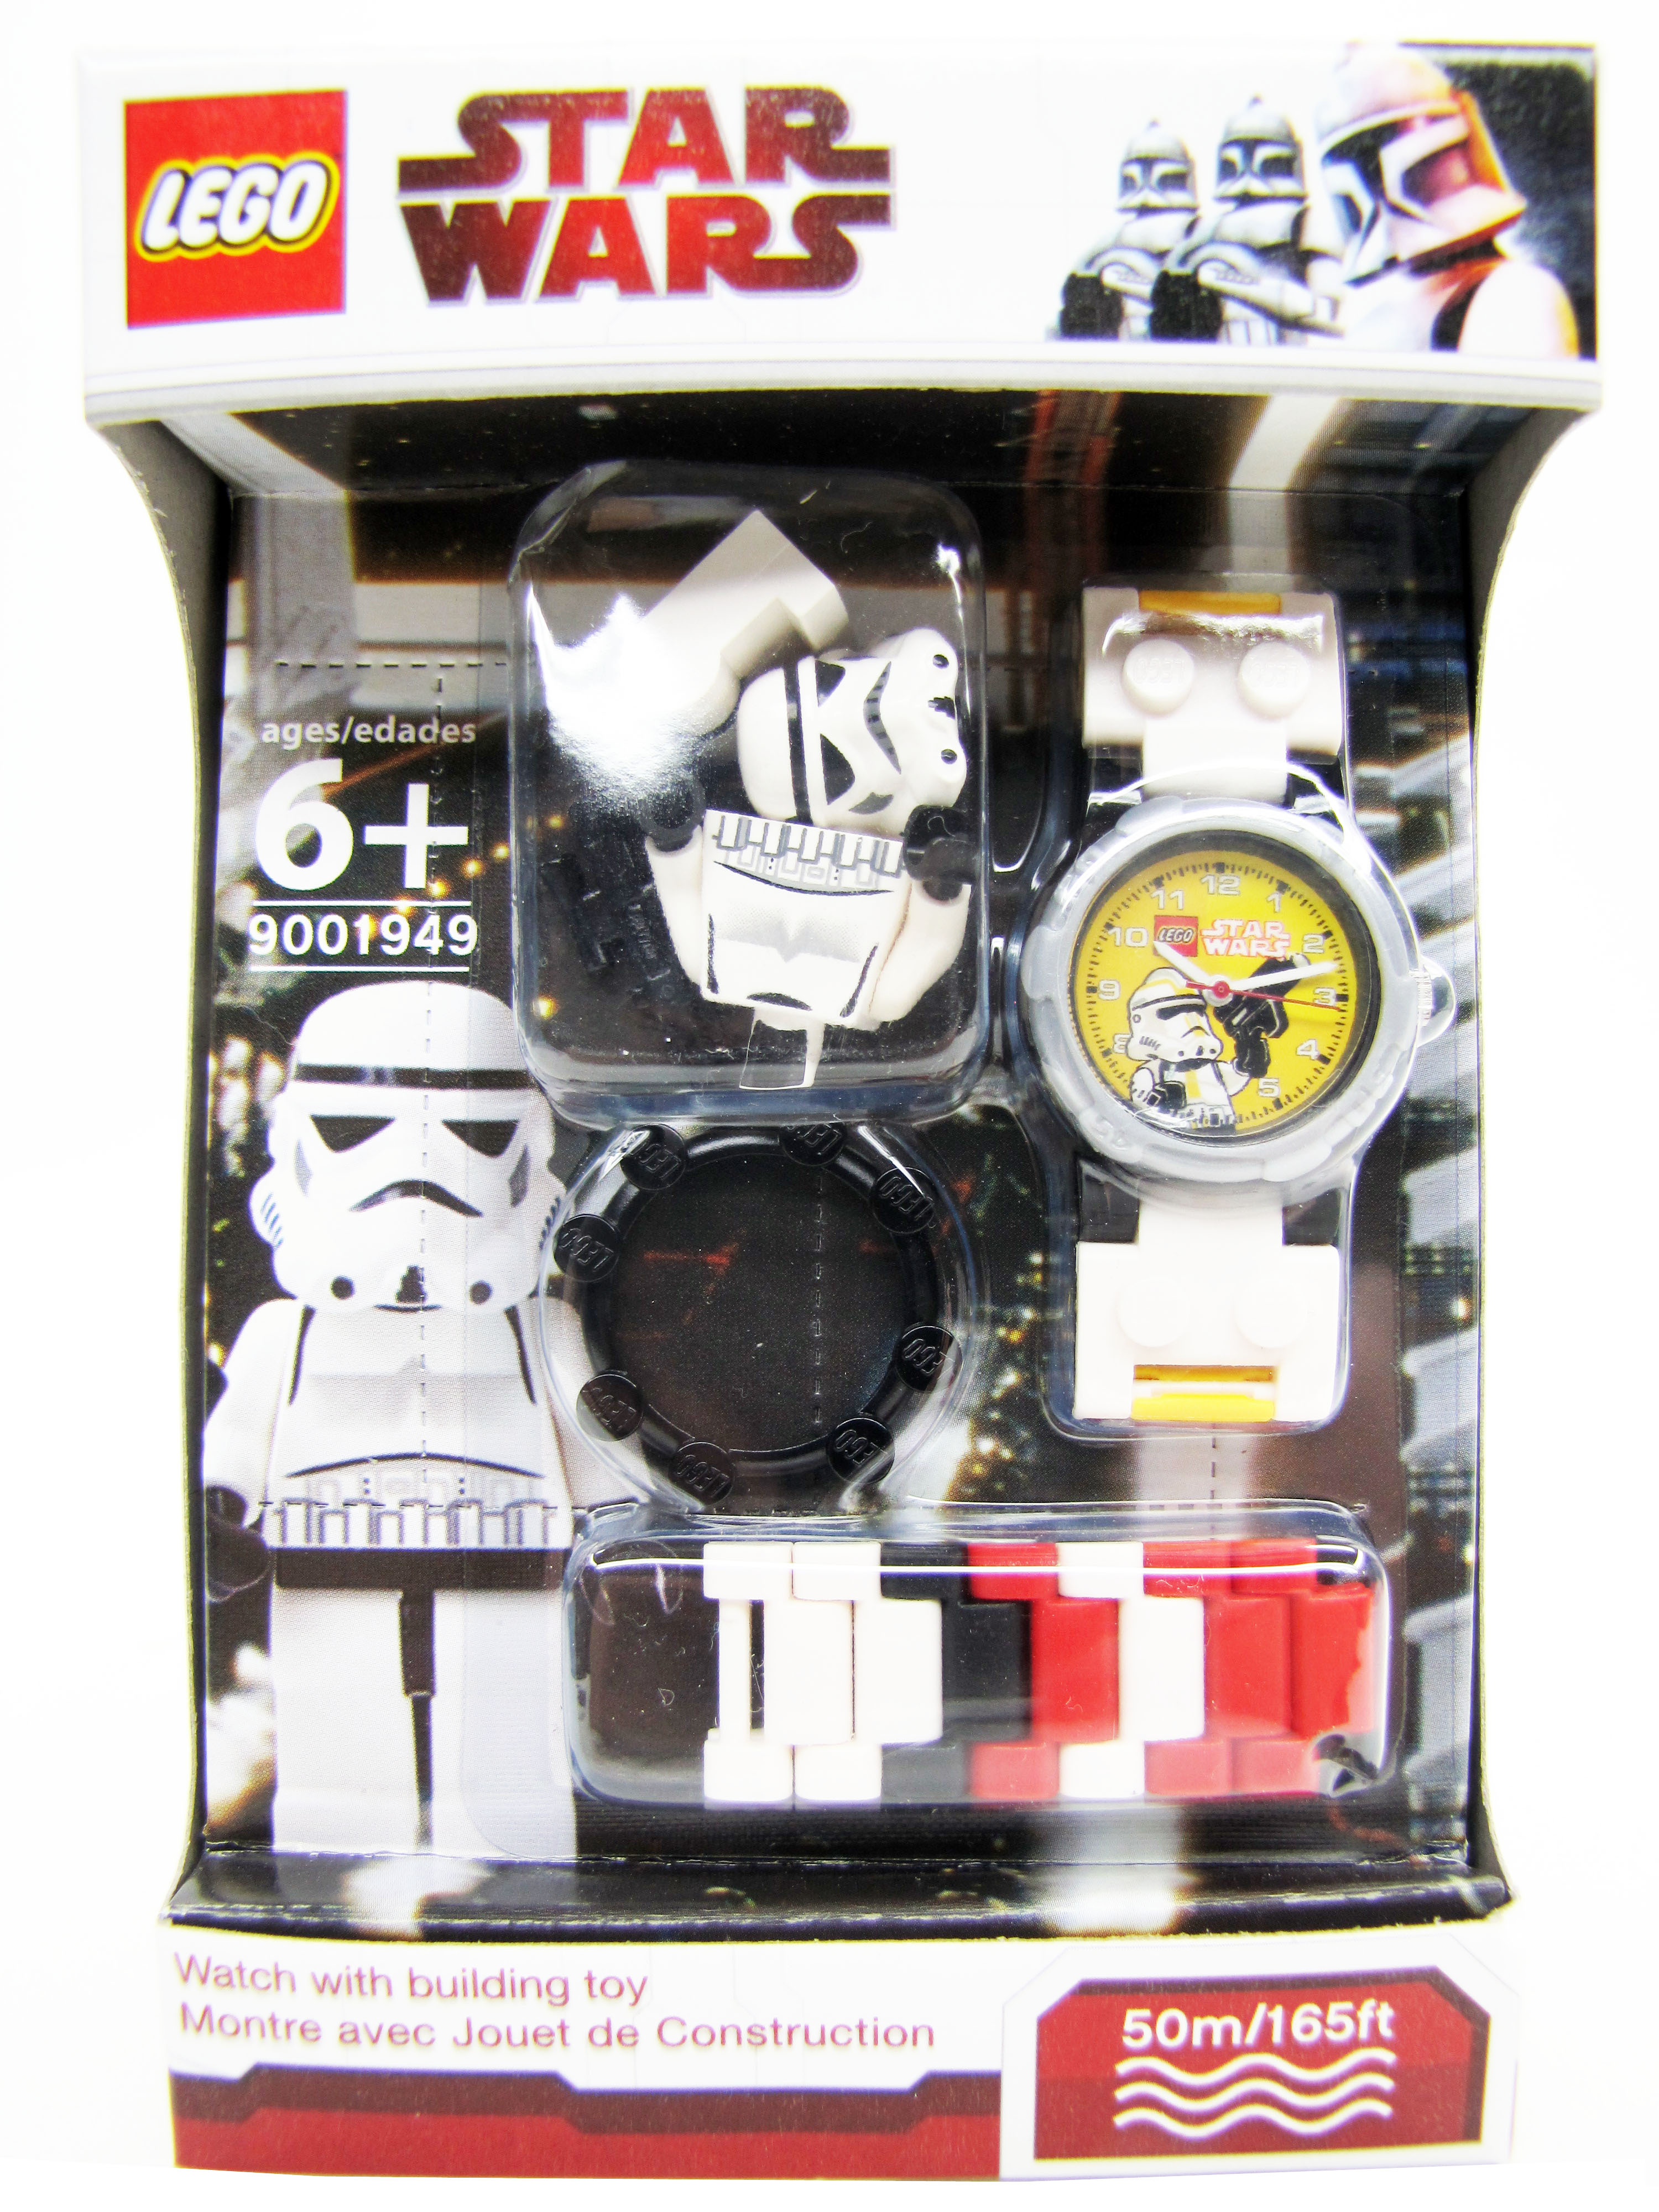 Lego Star Wars Stormtrooper Minifigure Watch NEW Time 9001949